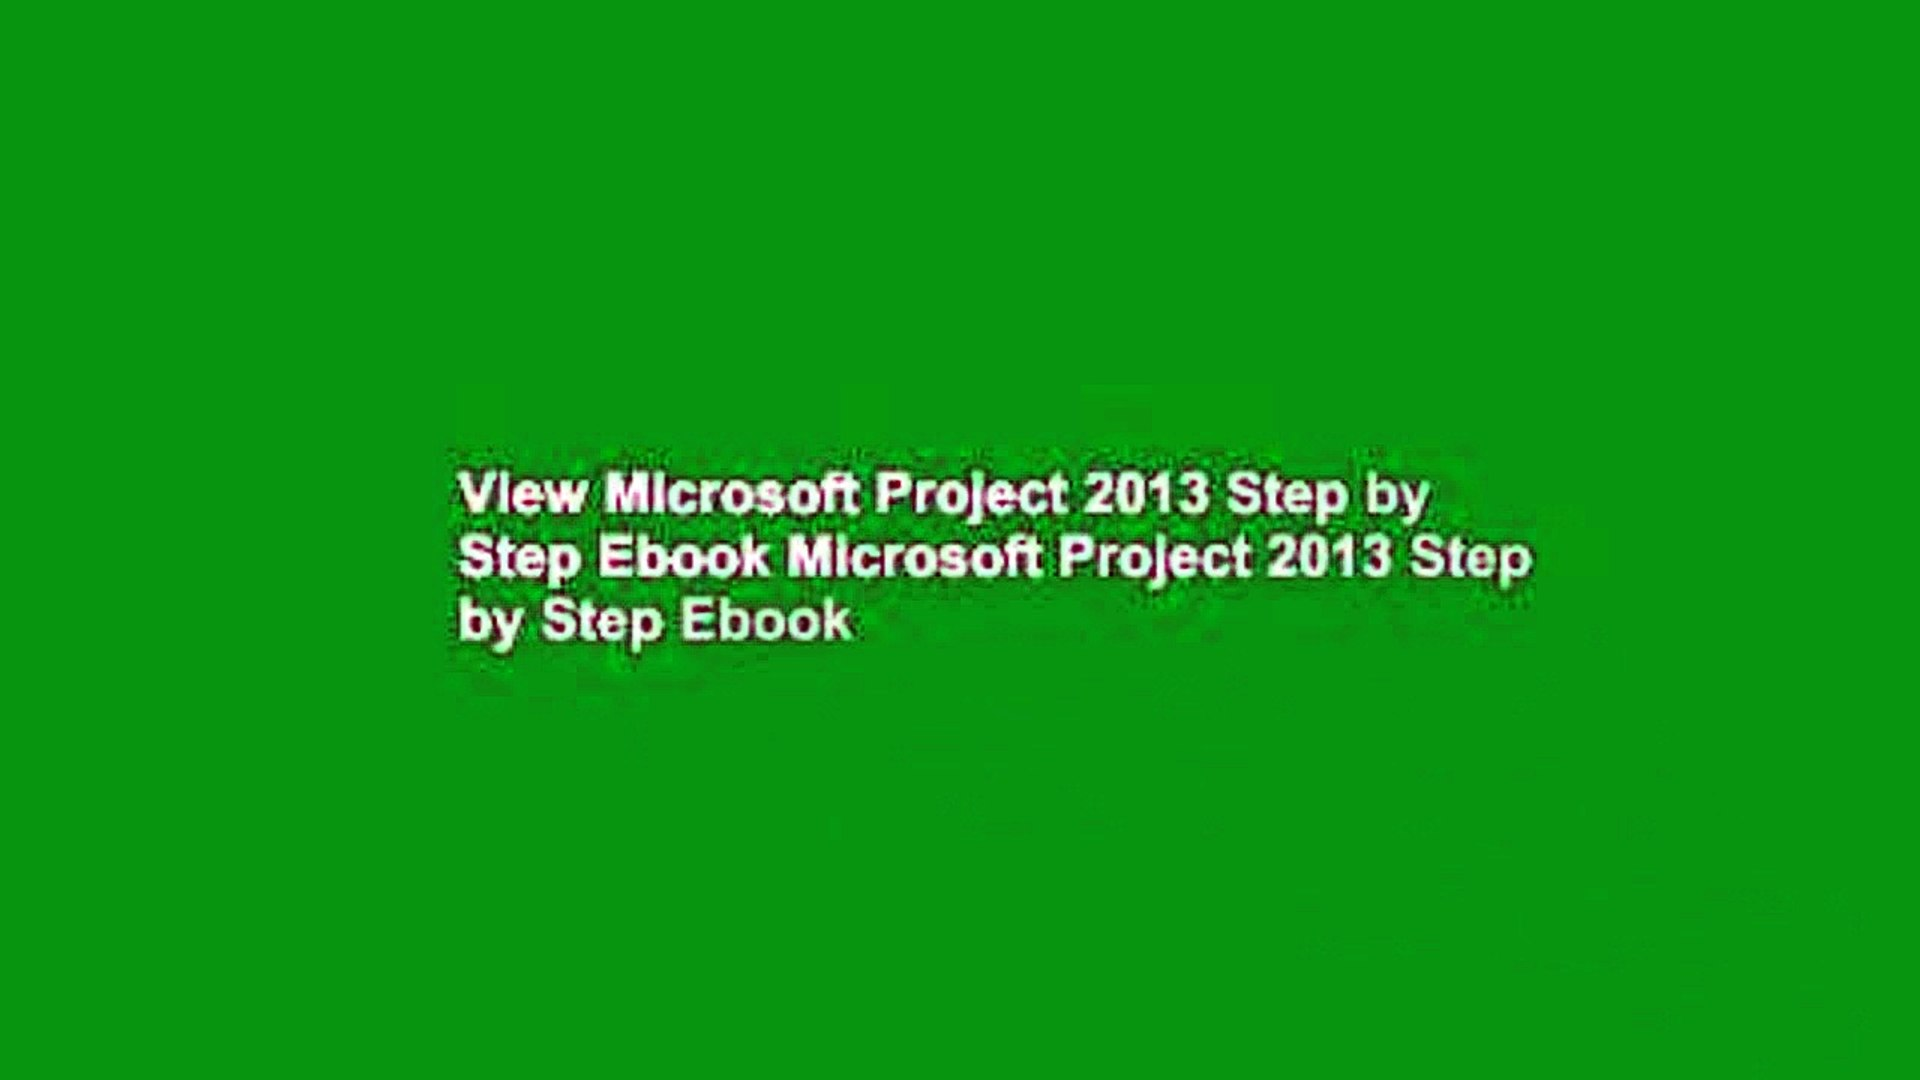 View Microsoft Project 2013 Step by Step Ebook Microsoft Project 2013 Step by Step Ebook